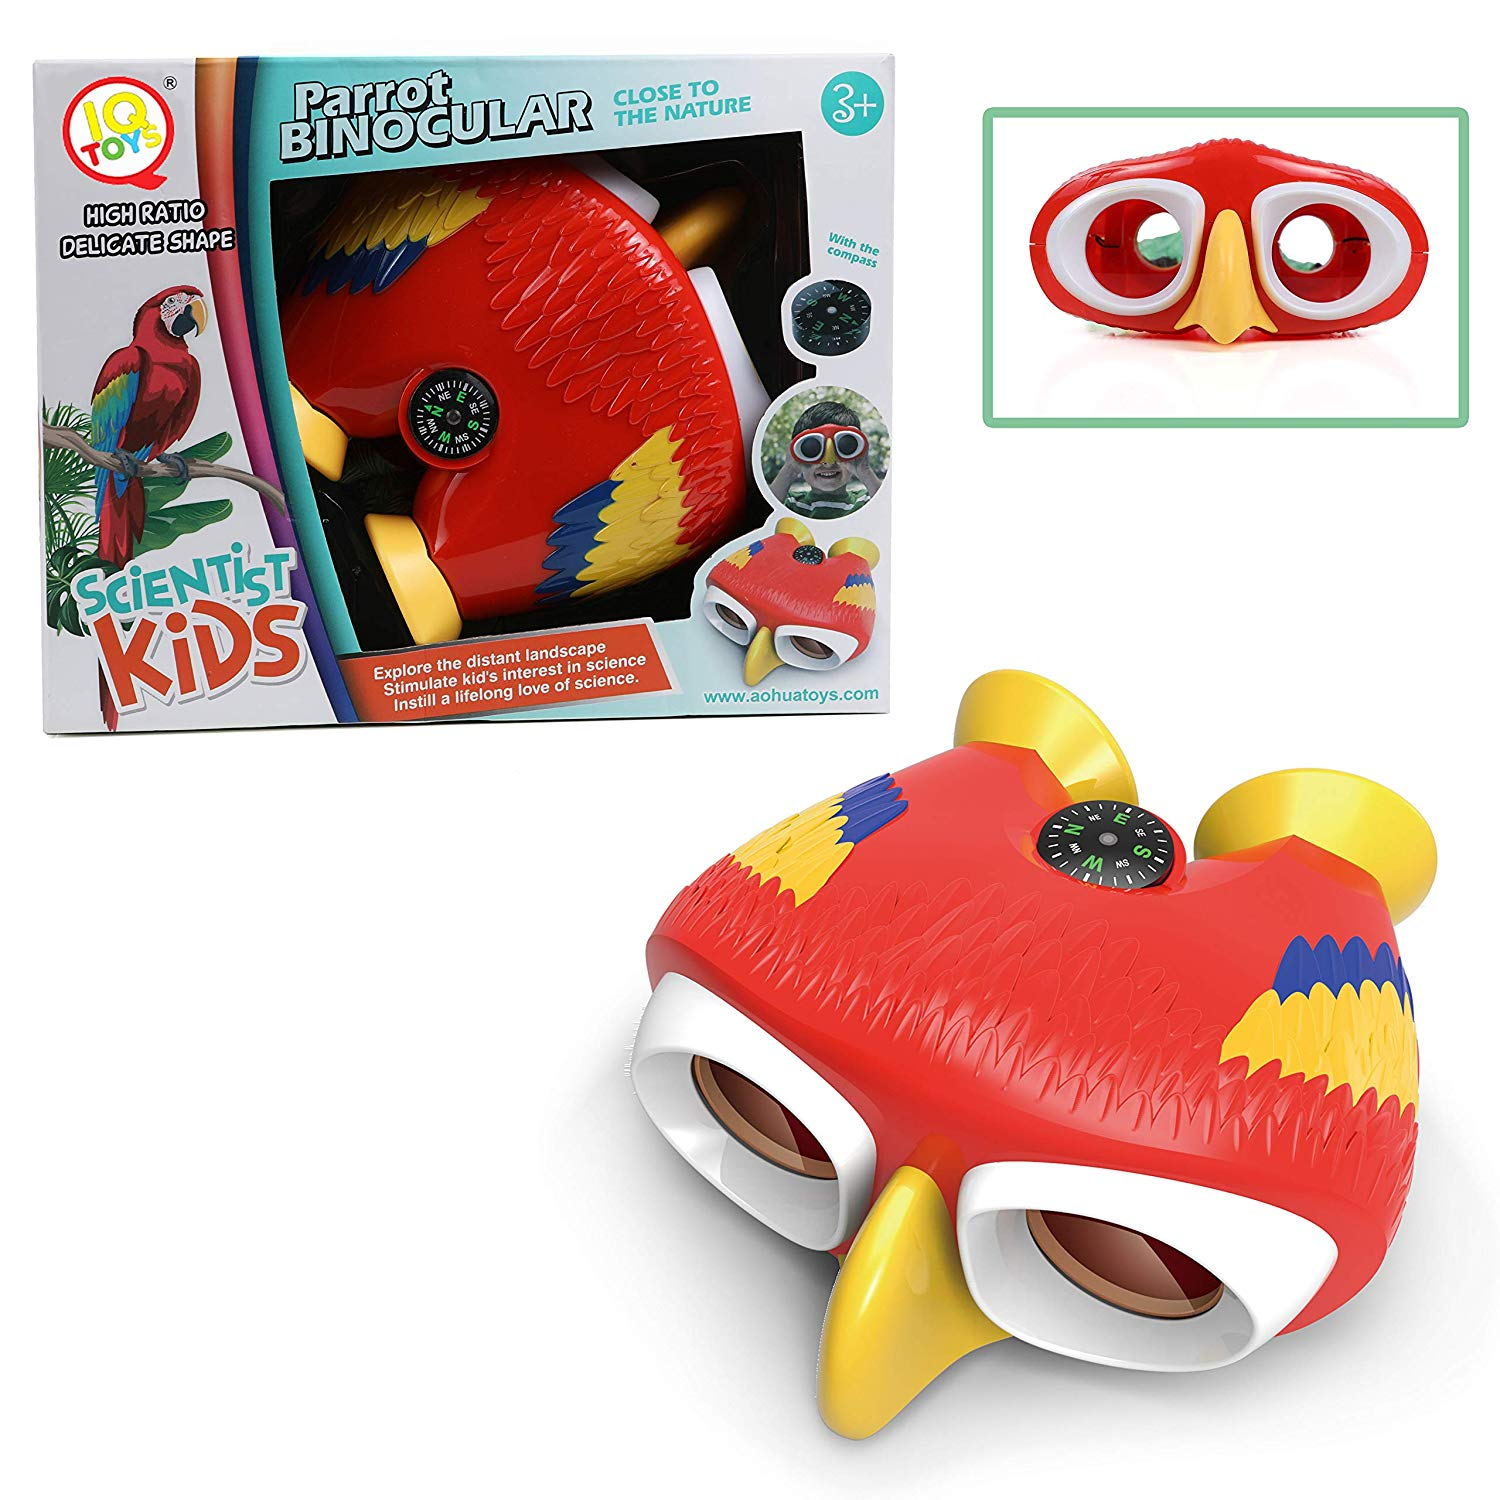 IQ Toys Kids Binoculars with Compass for Pretend Play, Jungle, Forest, Mountain Exploration, Bird Watching, Camping and Hiking Fun Parrot Binoculars